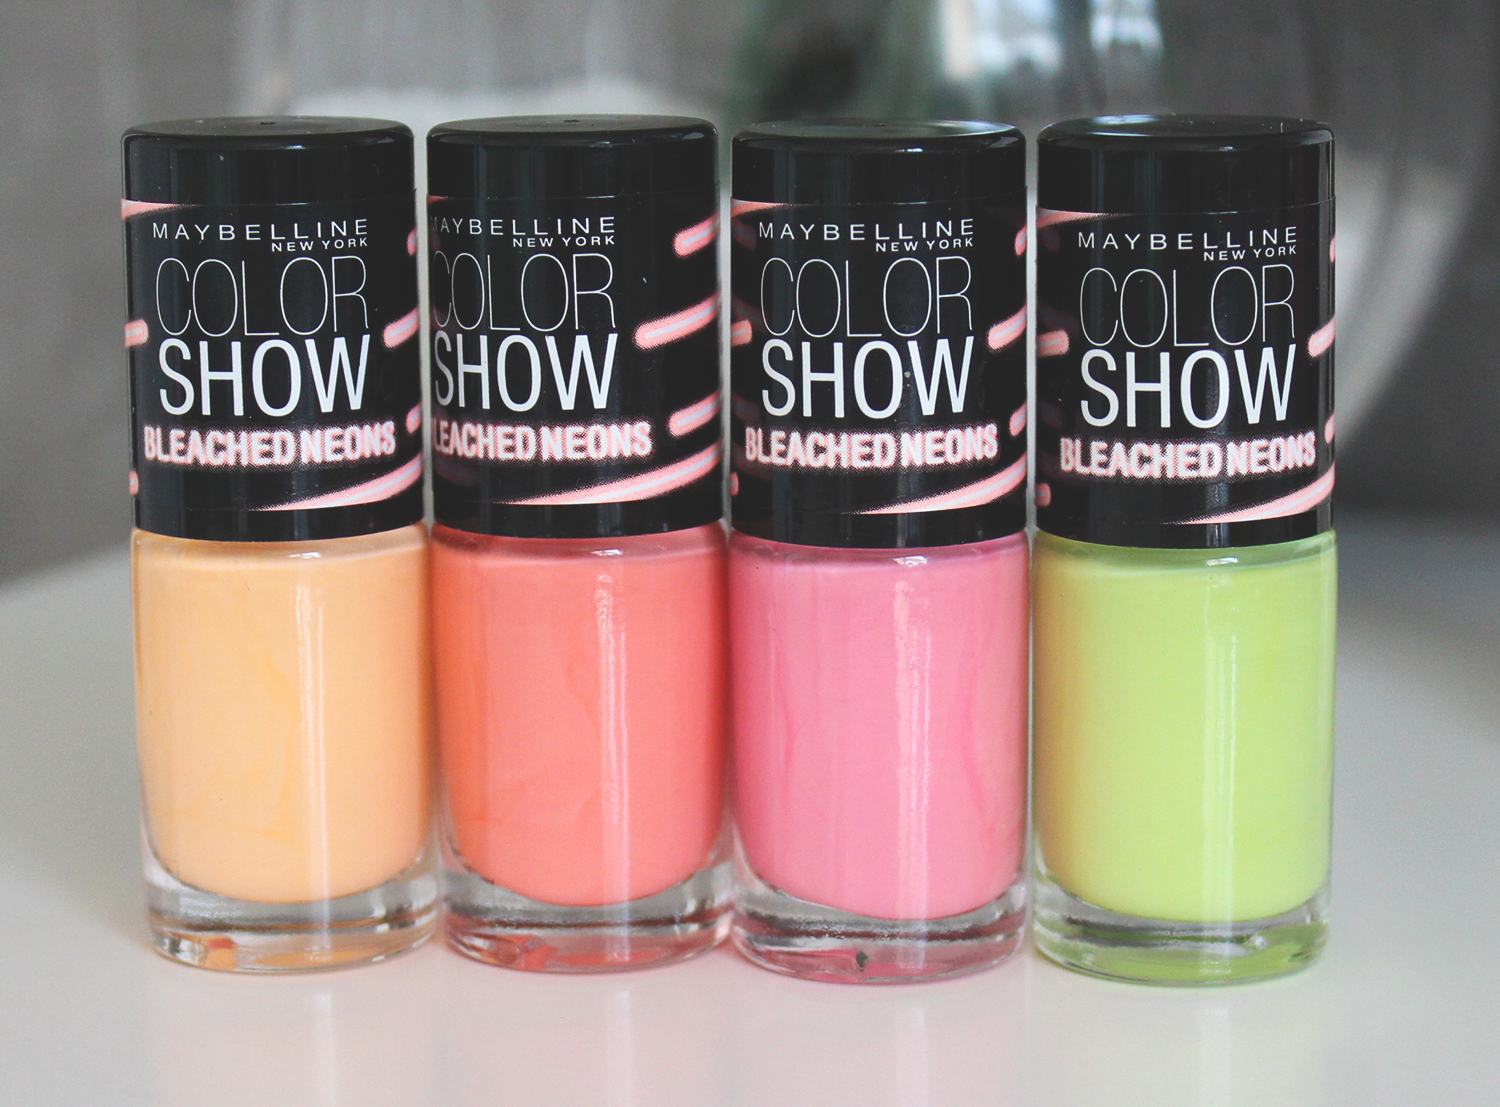 vernis color show bleached neons maybelline 380 - Vernis Color Show